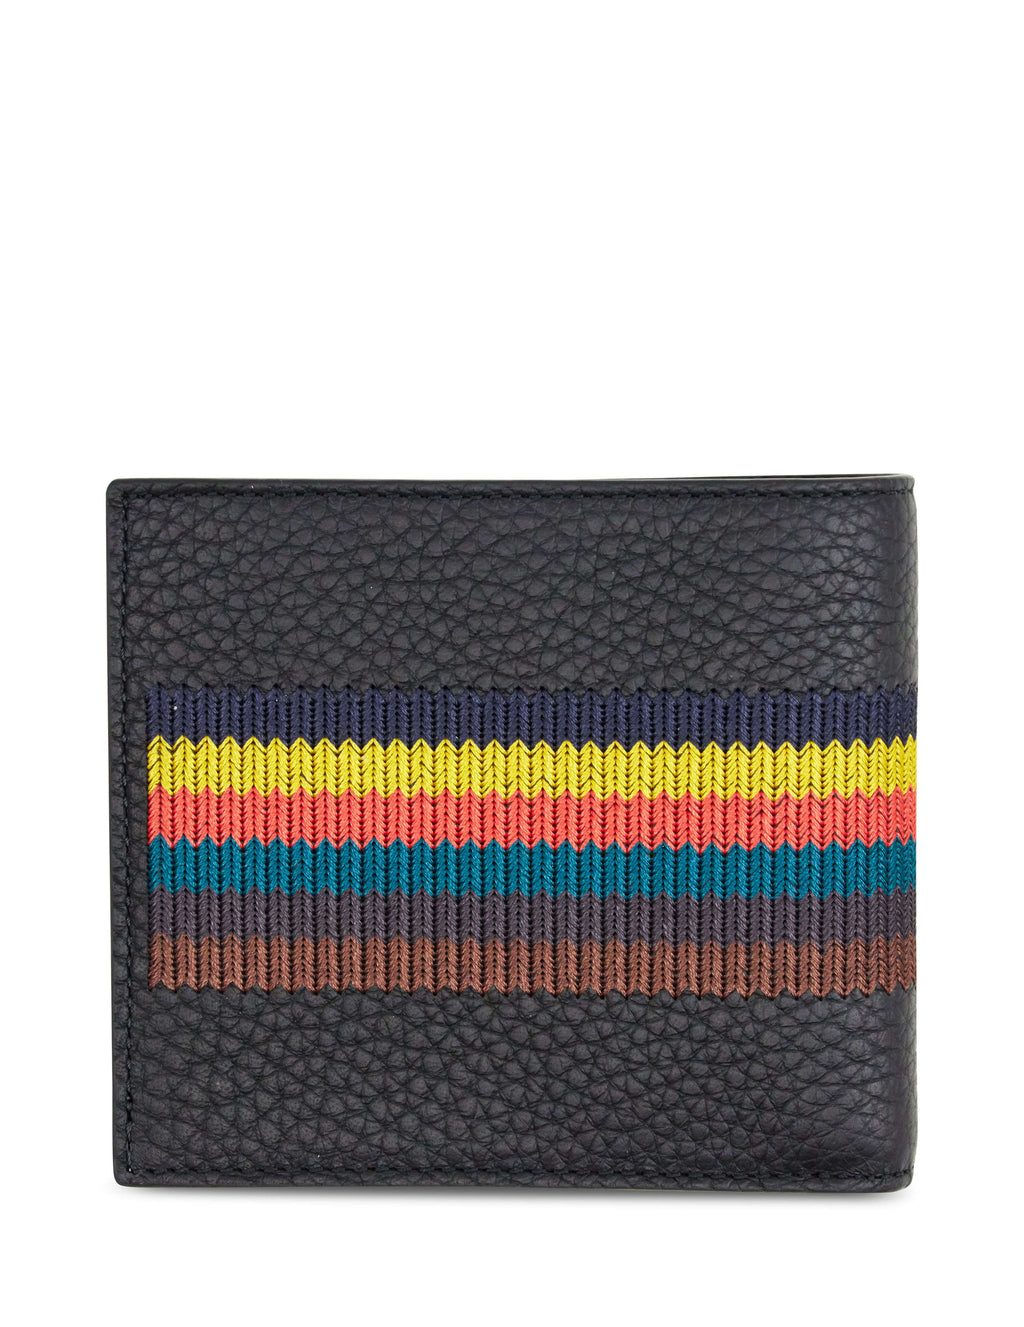 Paul Smith Men's Giulio Fashion Black Bright Stripes Billfold Wallet M1A4832A4007479